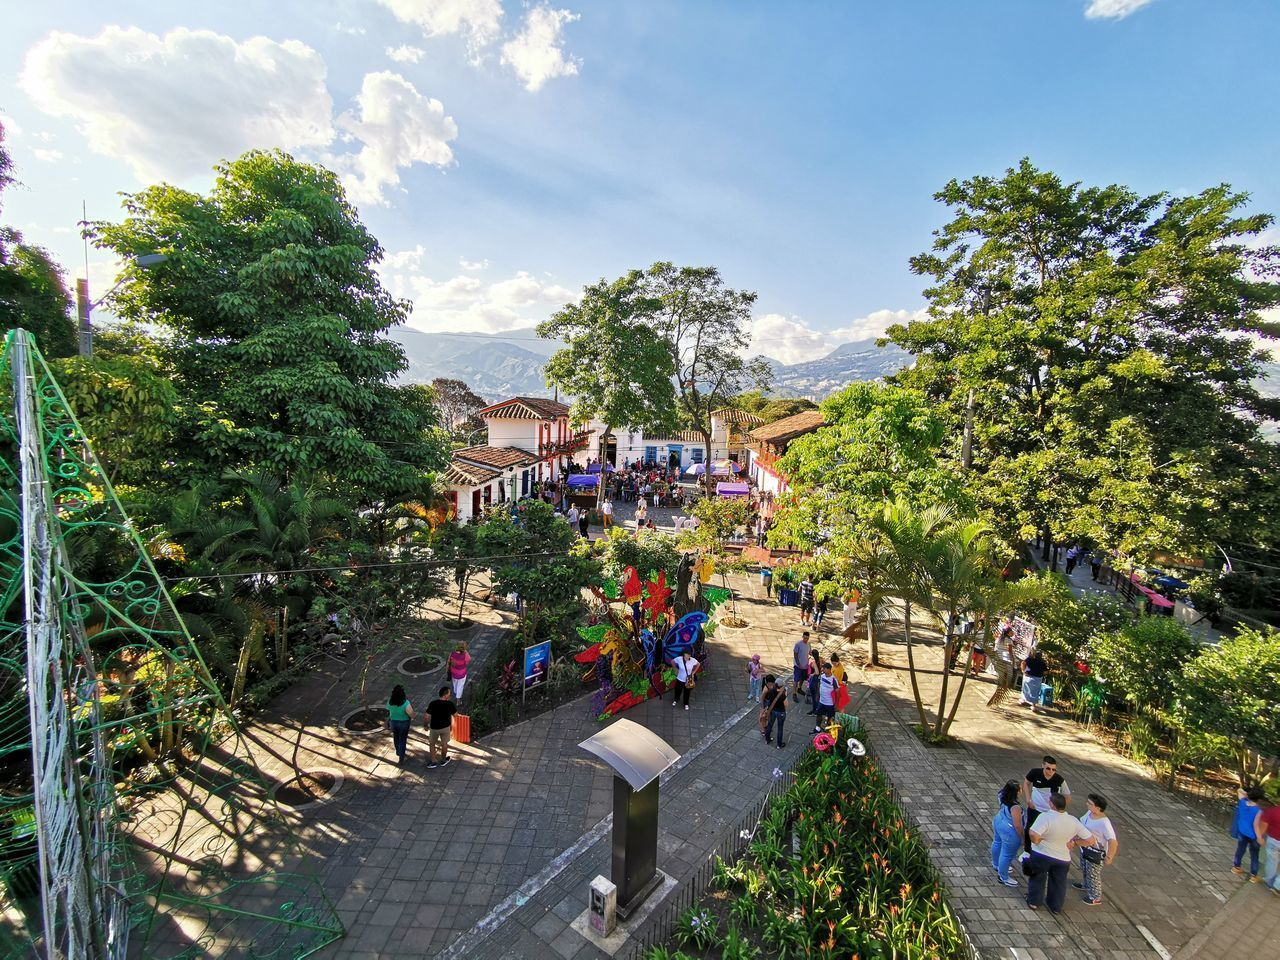 plant, tree, group of people, sky, nature, real people, men, women, adult, leisure activity, day, cloud - sky, crowd, lifestyles, growth, architecture, large group of people, green color, high angle view, outdoors